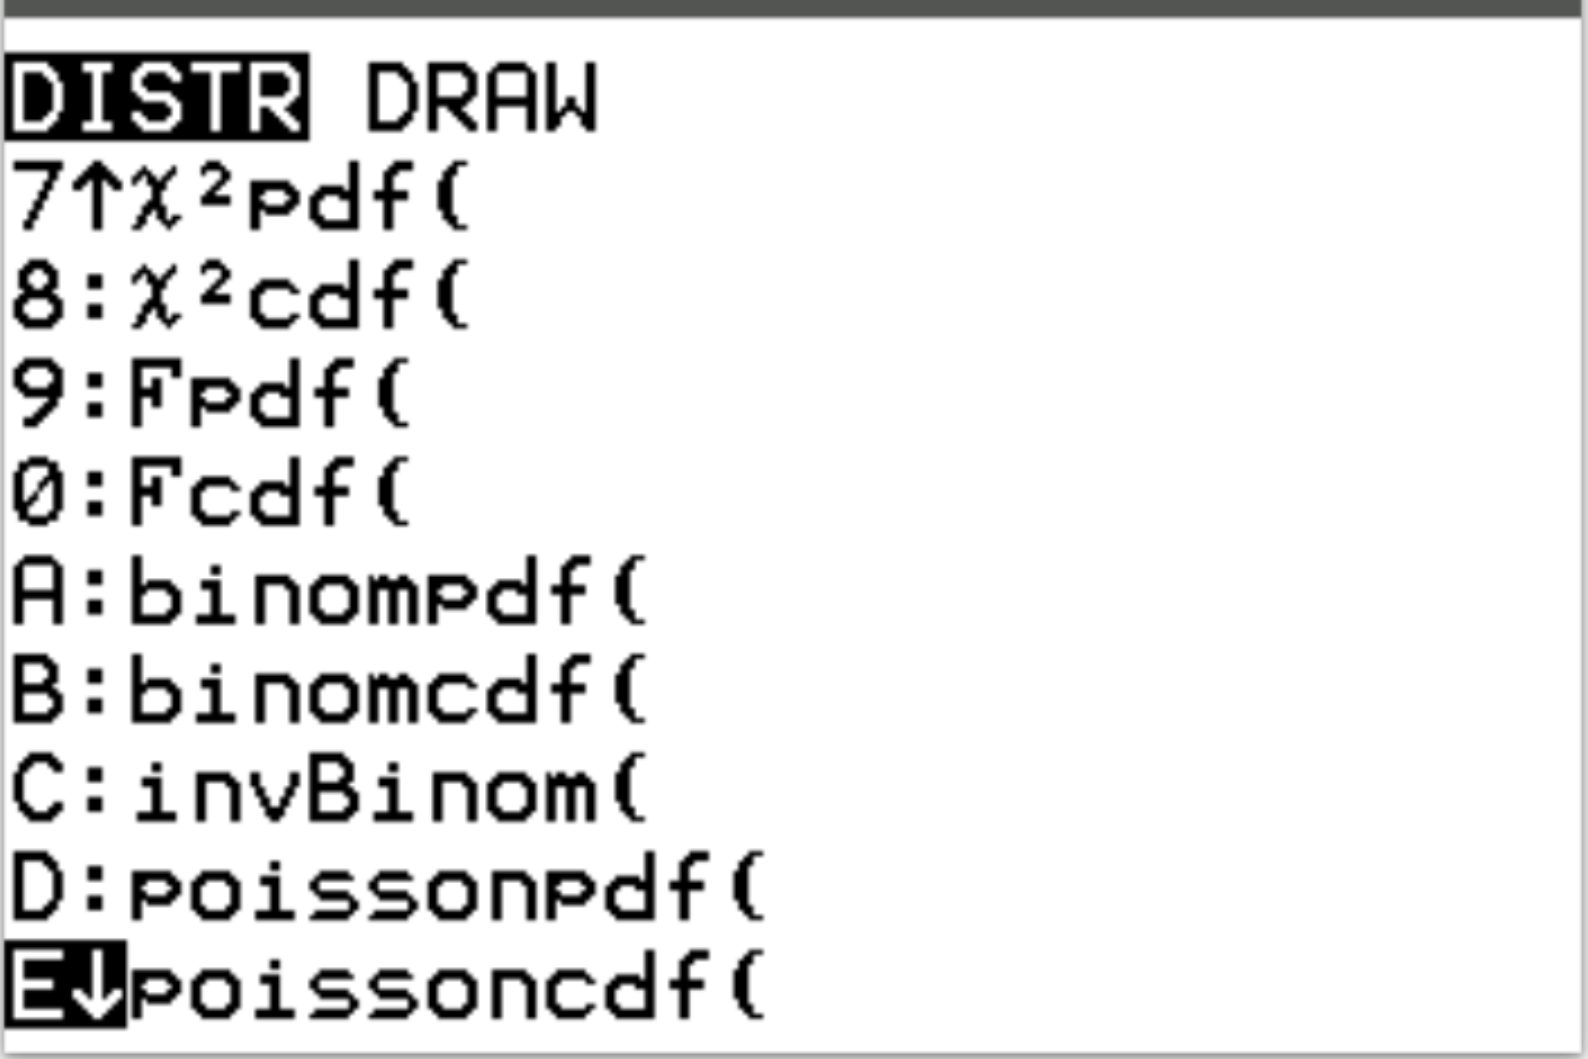 poissonpdf() and poissoncdf() options on a TI-84 calculator